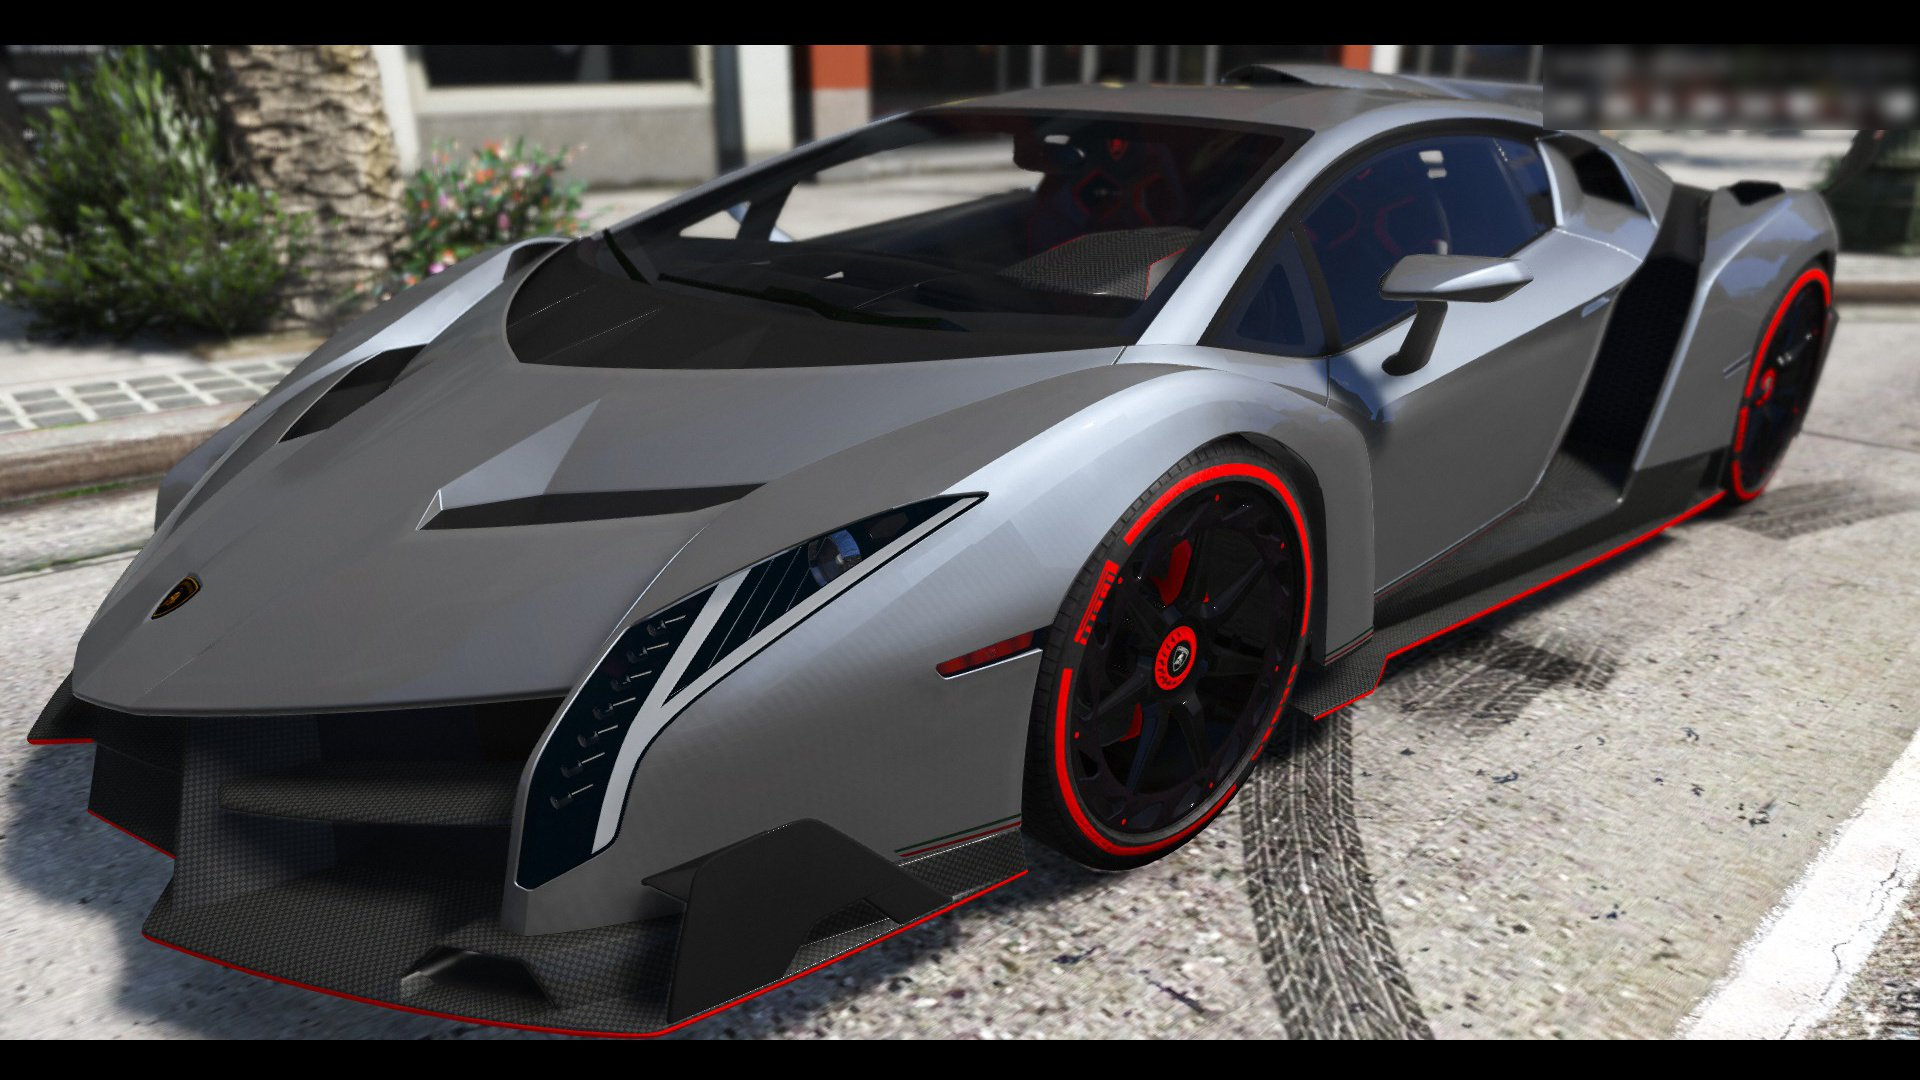 2013 Lamborghini Veneno HQ [Add-On | Dials] - GTA5-Mods.com